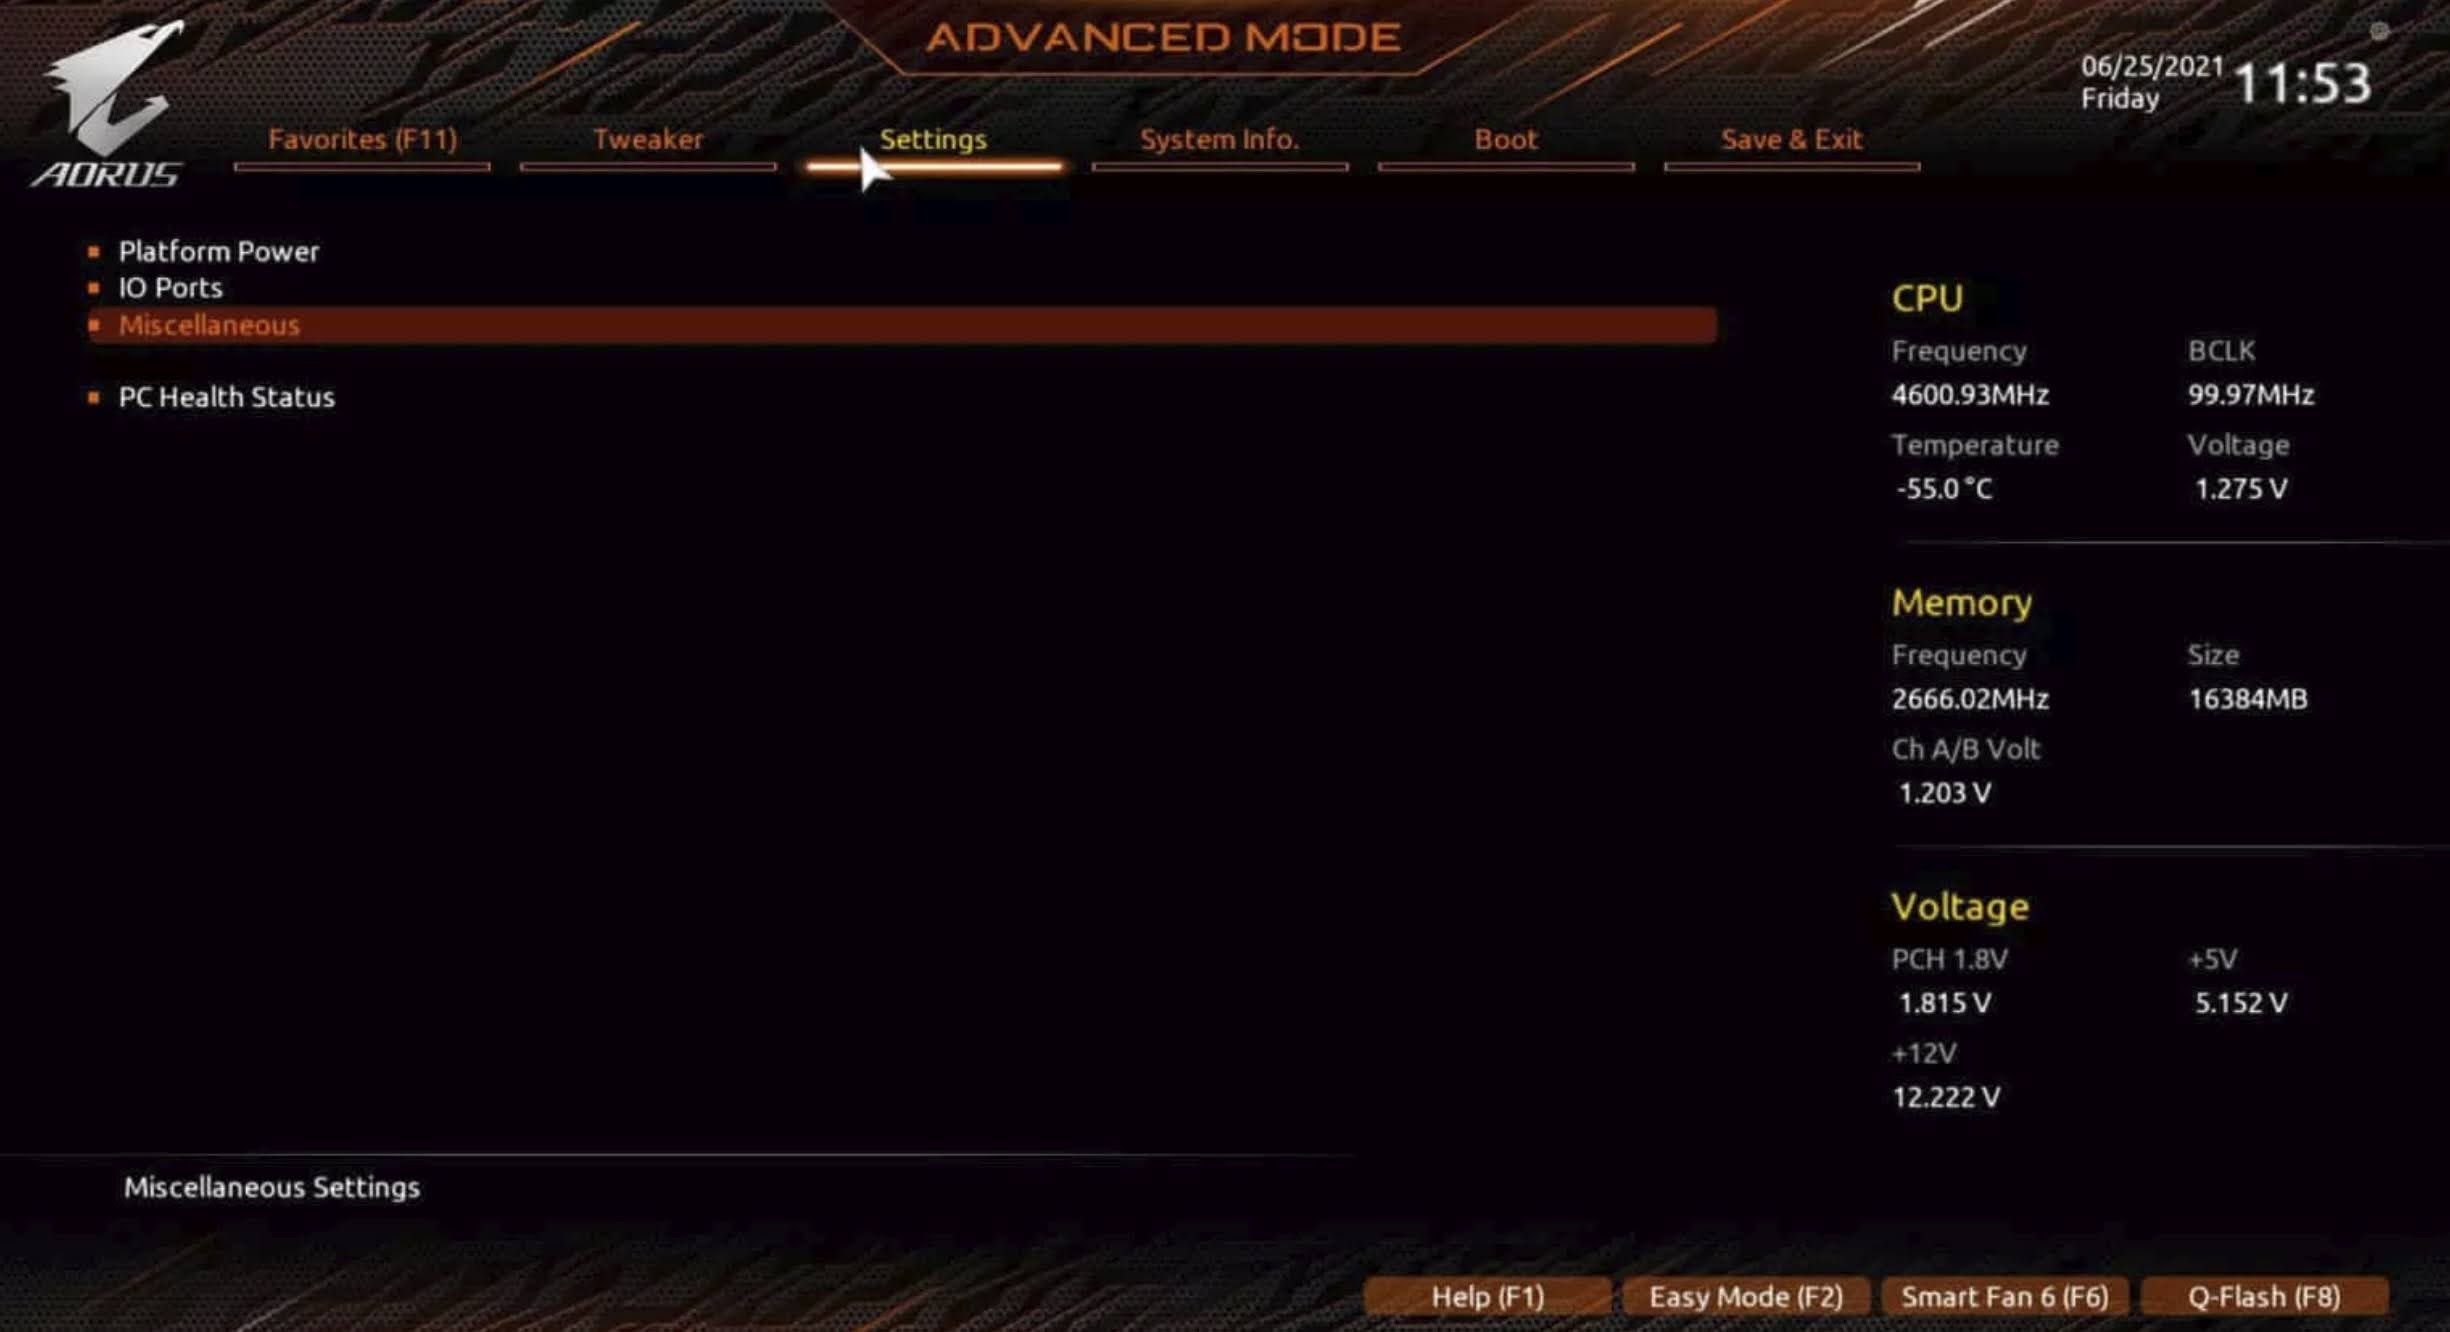 Enable TPM 2.0 for GIGABYTE motherboard using AORUS: Navigate to the Settings tab and double-click on the Miscellaneous option.